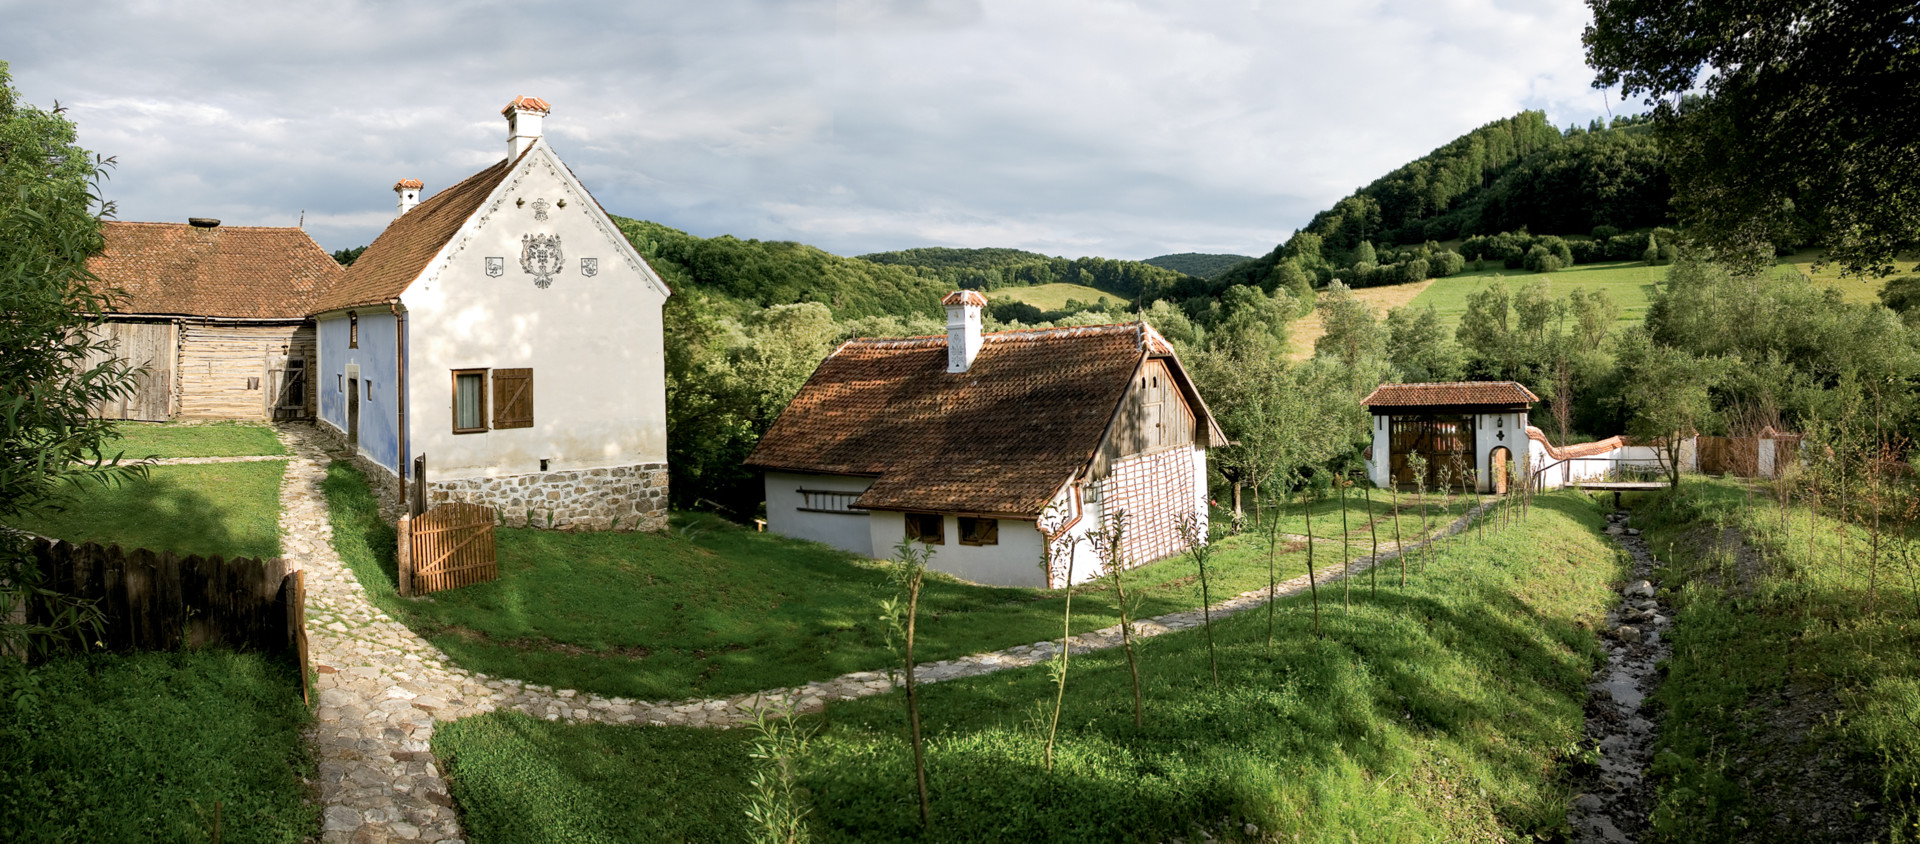 Transylvania: 10 reasons to visit now